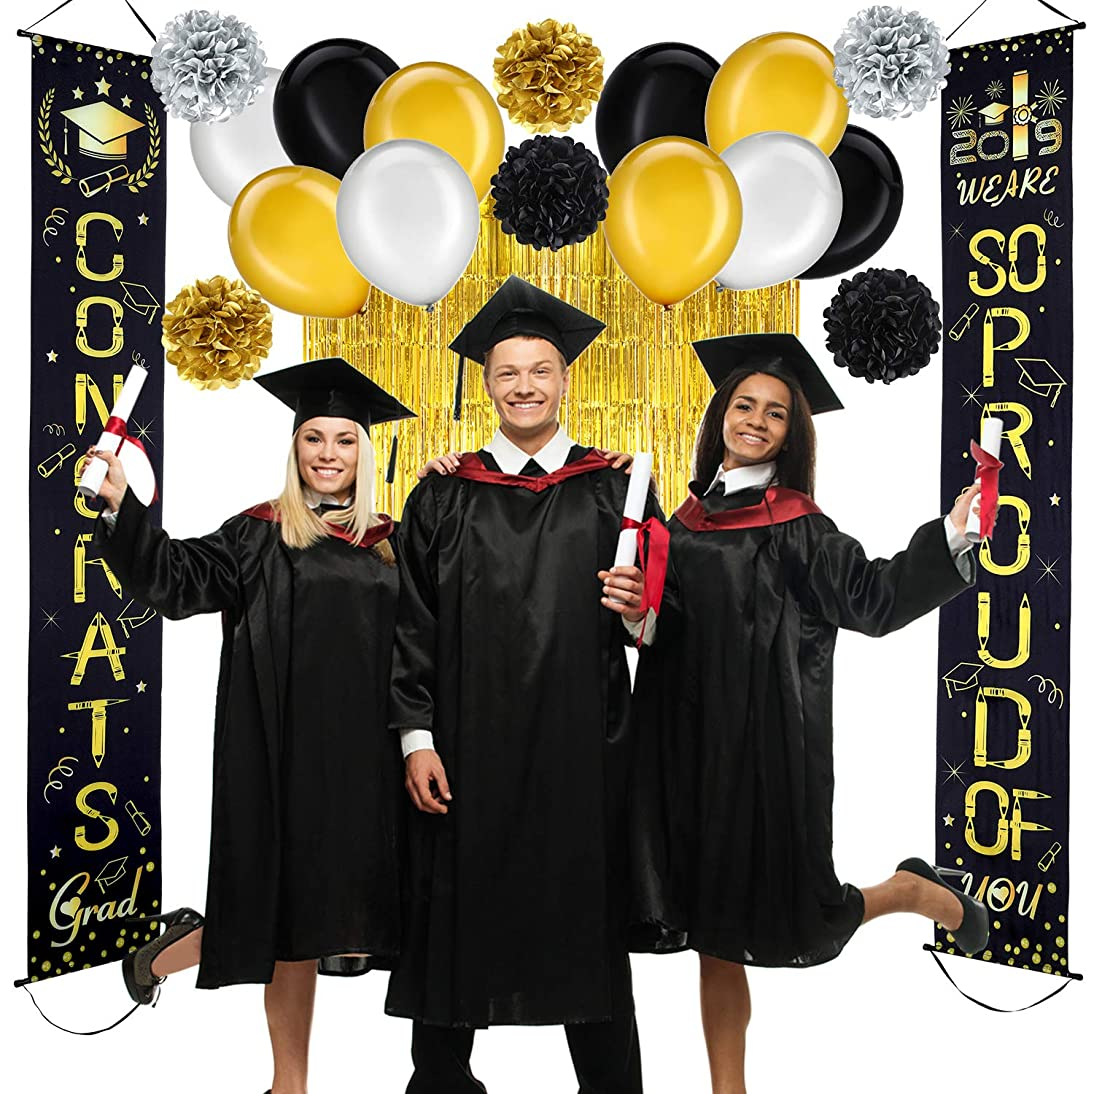 WE are SO Proud of You Banner Decoration Set Graduation Porch Sign Foil Curtains Metallic Fringe Curtains Tissue Paper Pom Poms for Graduation Party Grad Party Decorations